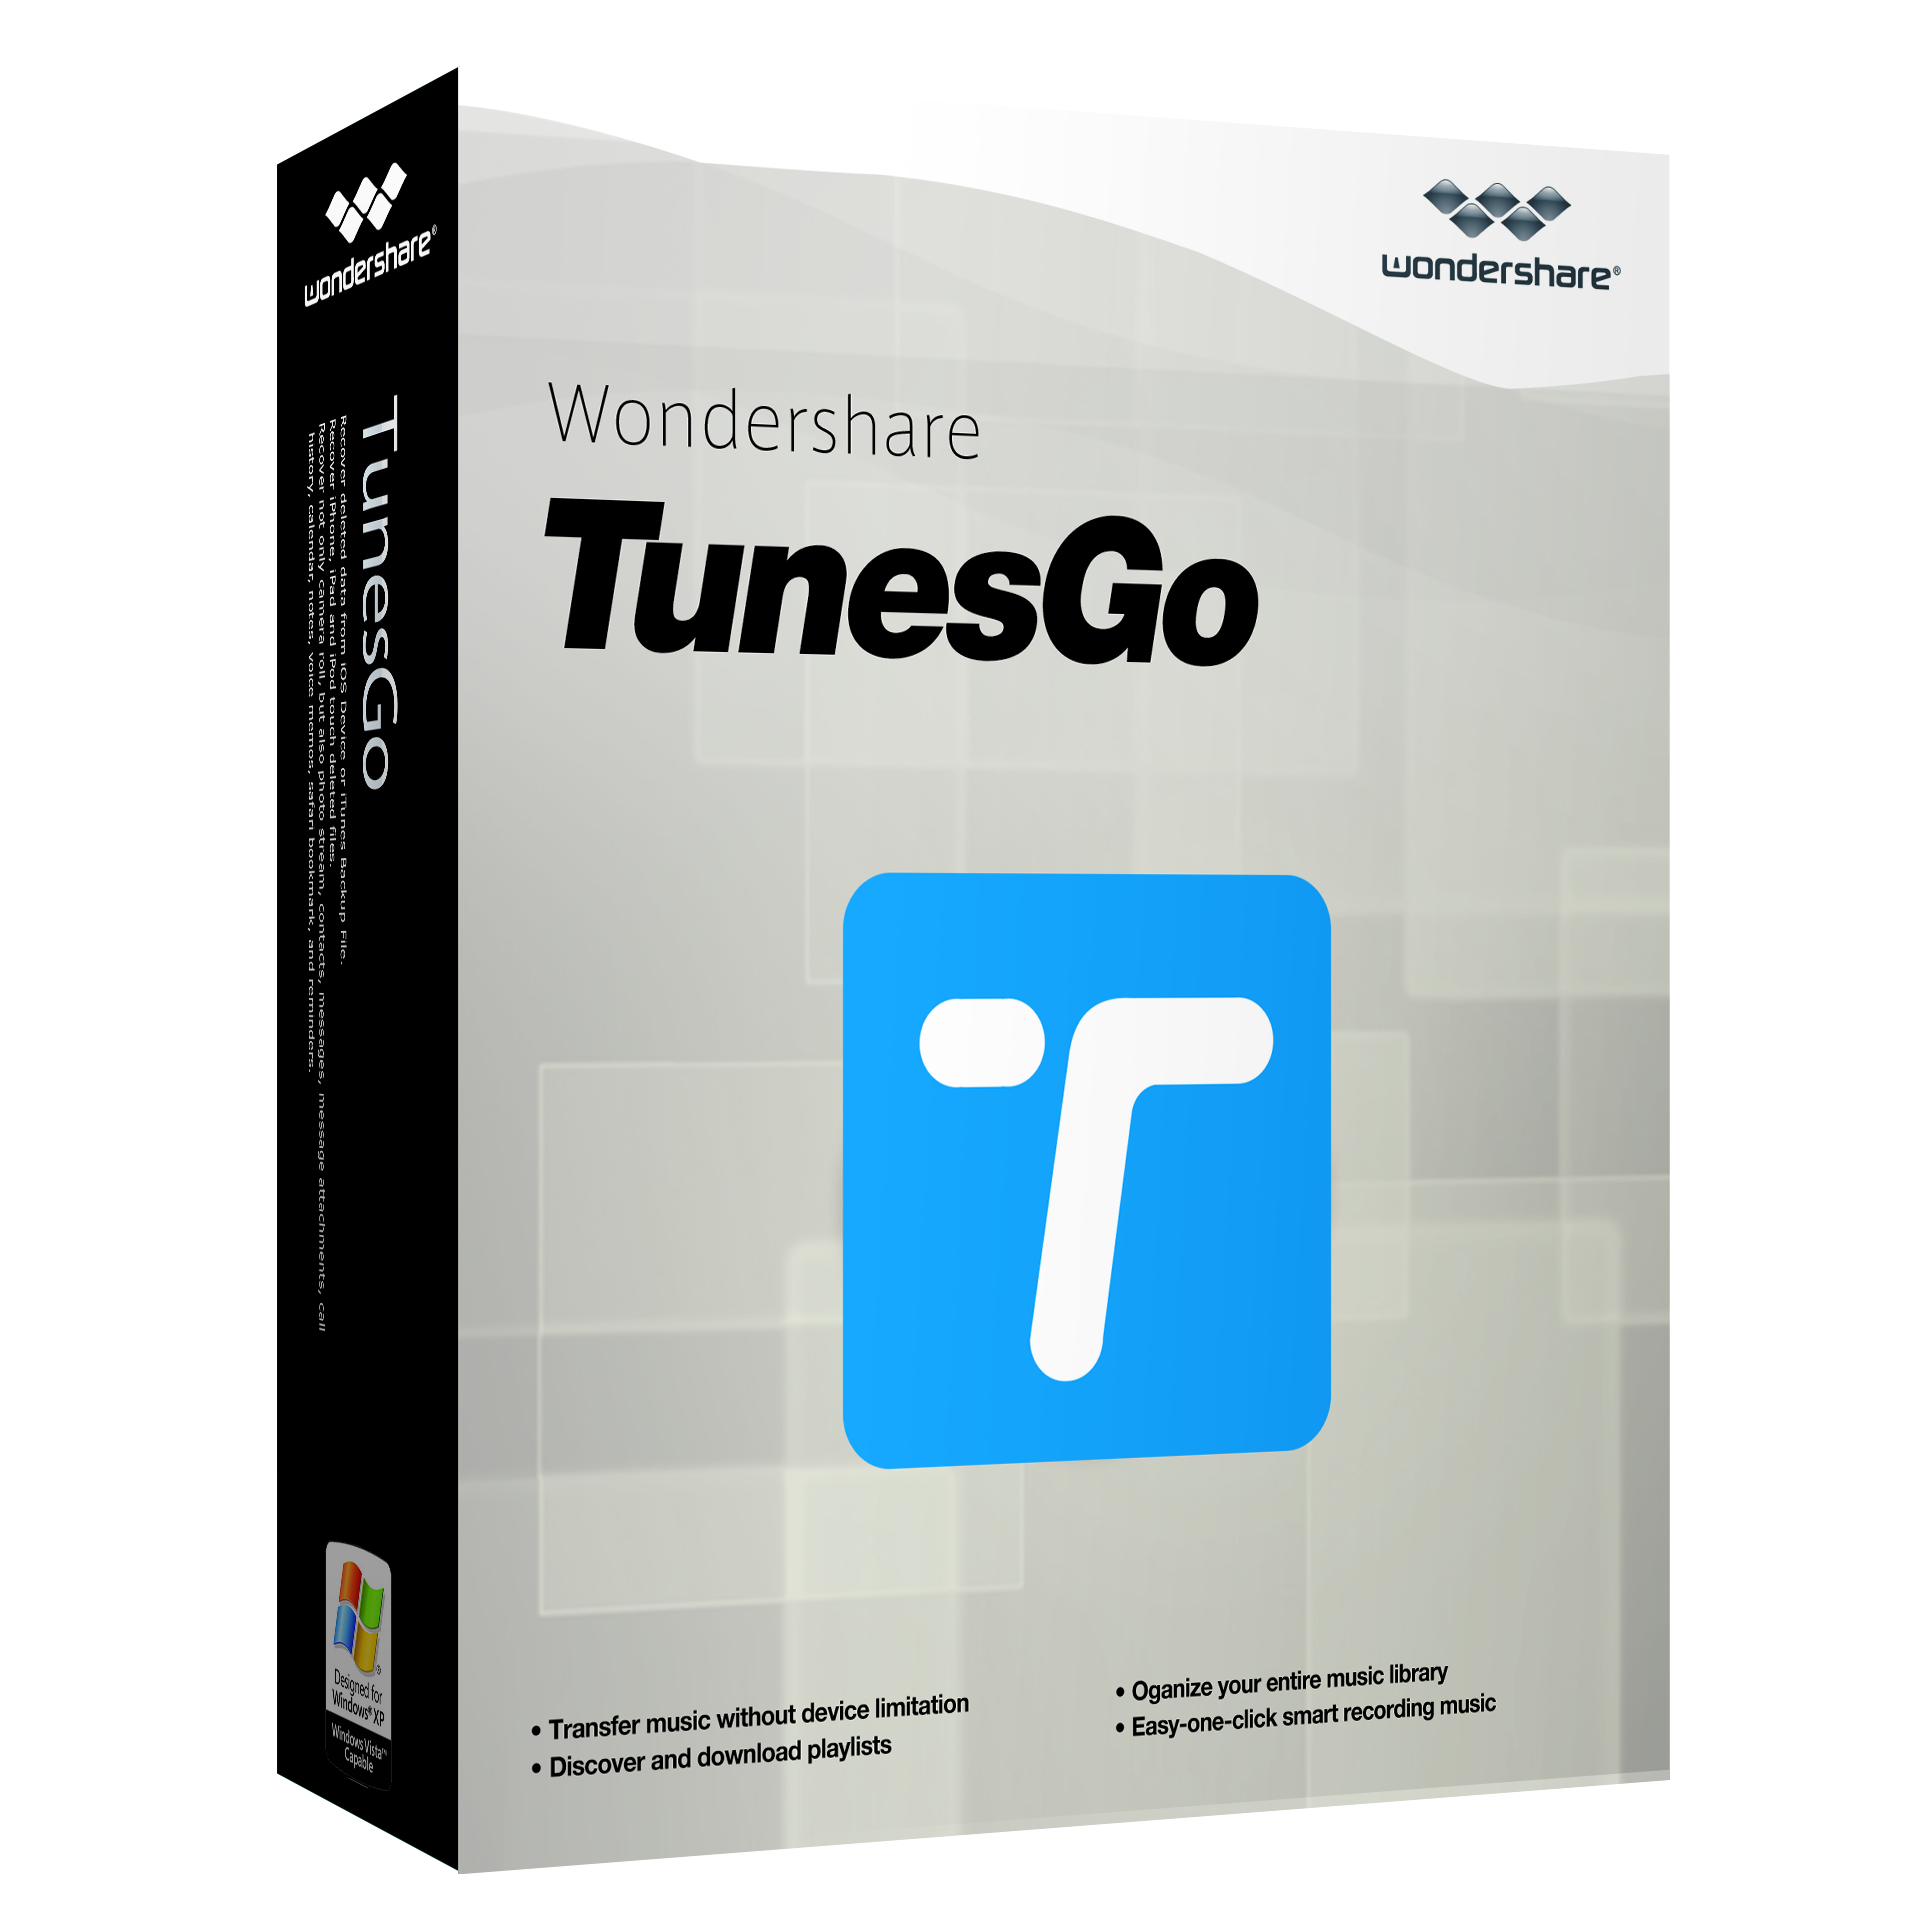 Wondershare TunesGo for iOS & Android